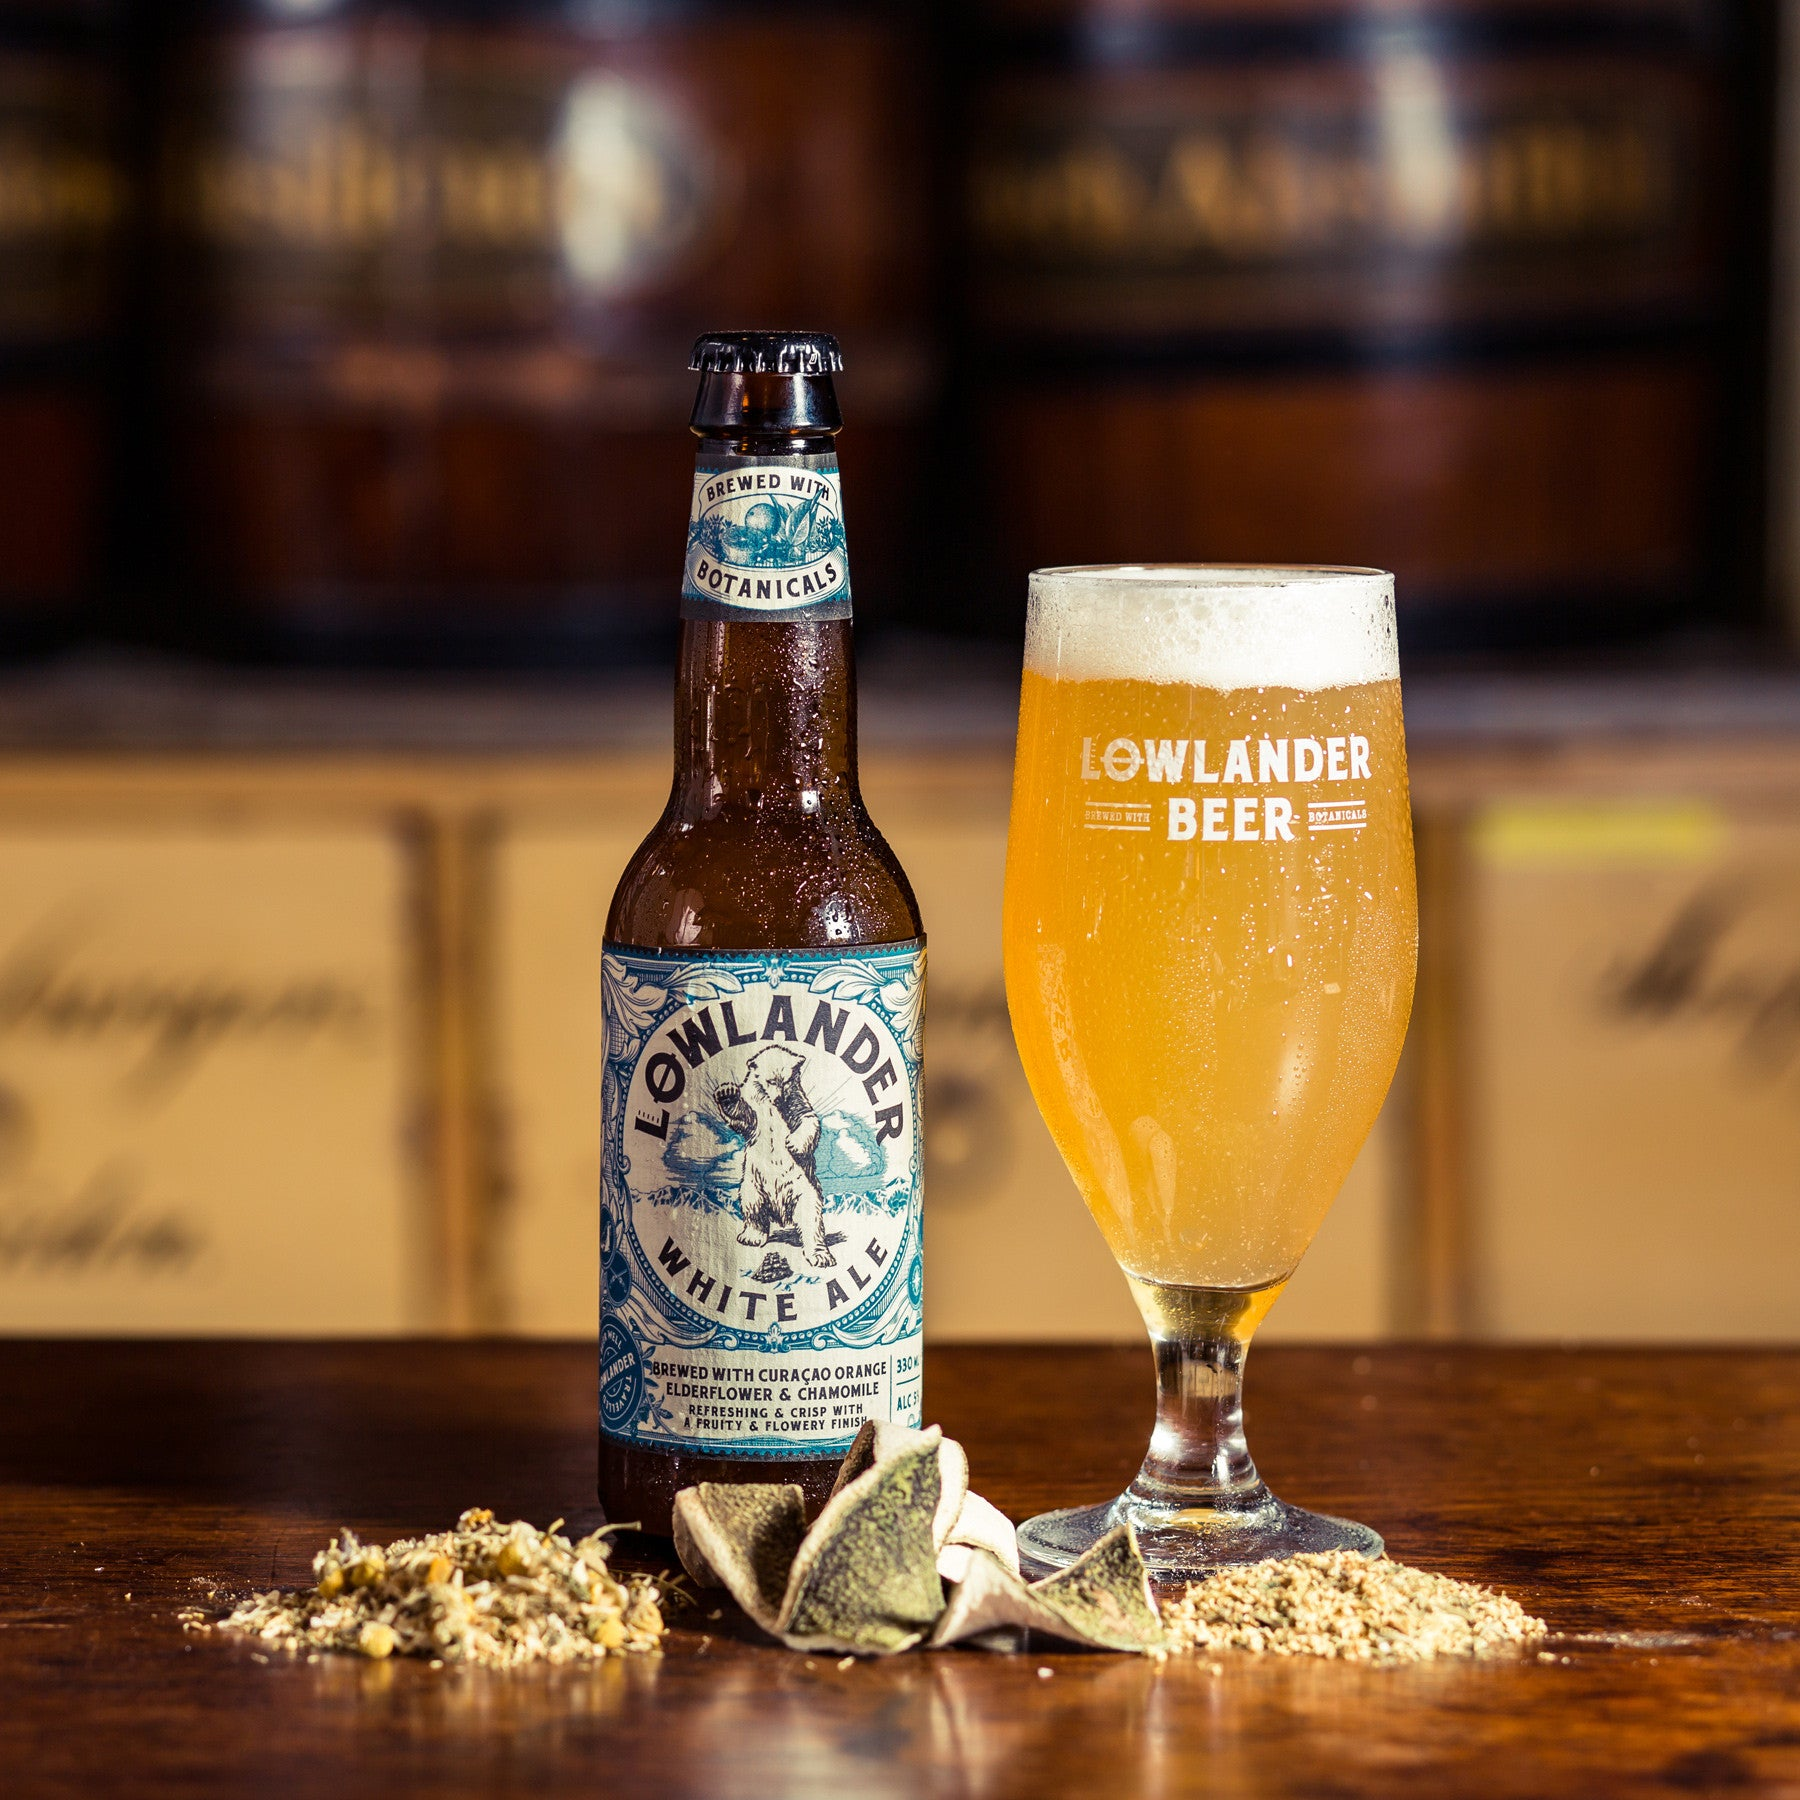 Lowlander-Beer-White-Ale---Glass---Botanicals-White_1944x.jpg?v=1464948613